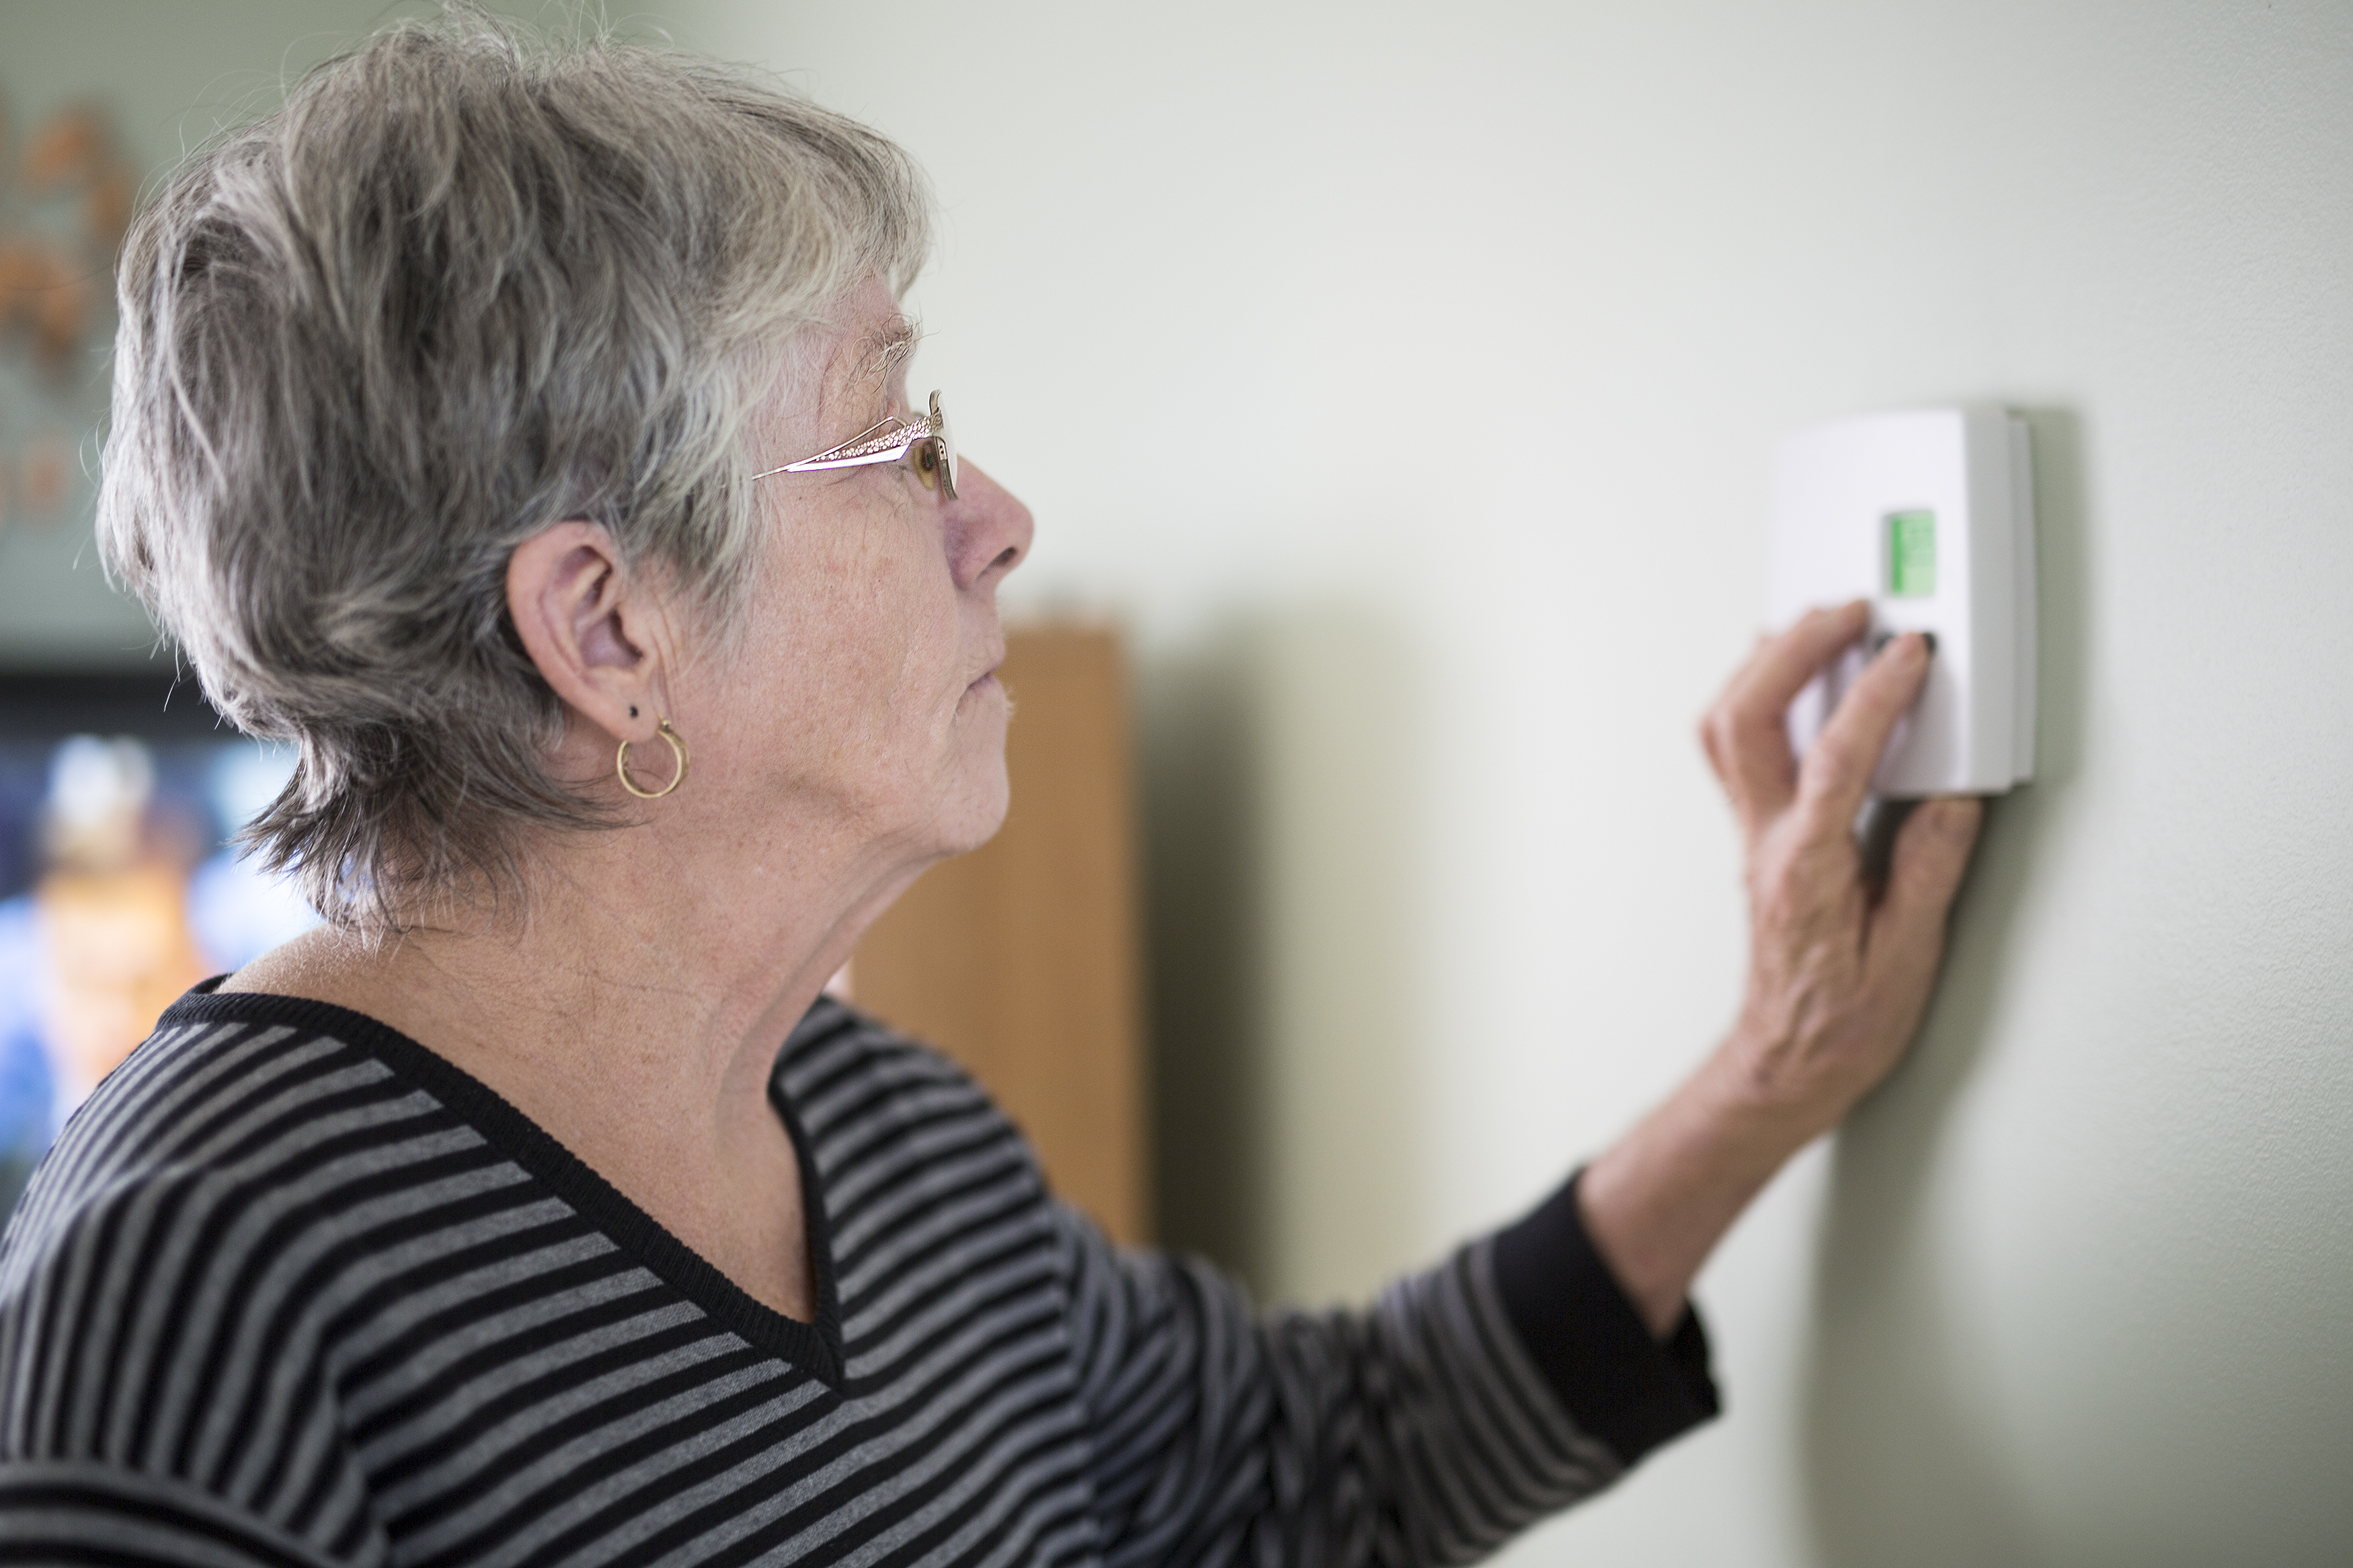 Lady adjusting thermostat